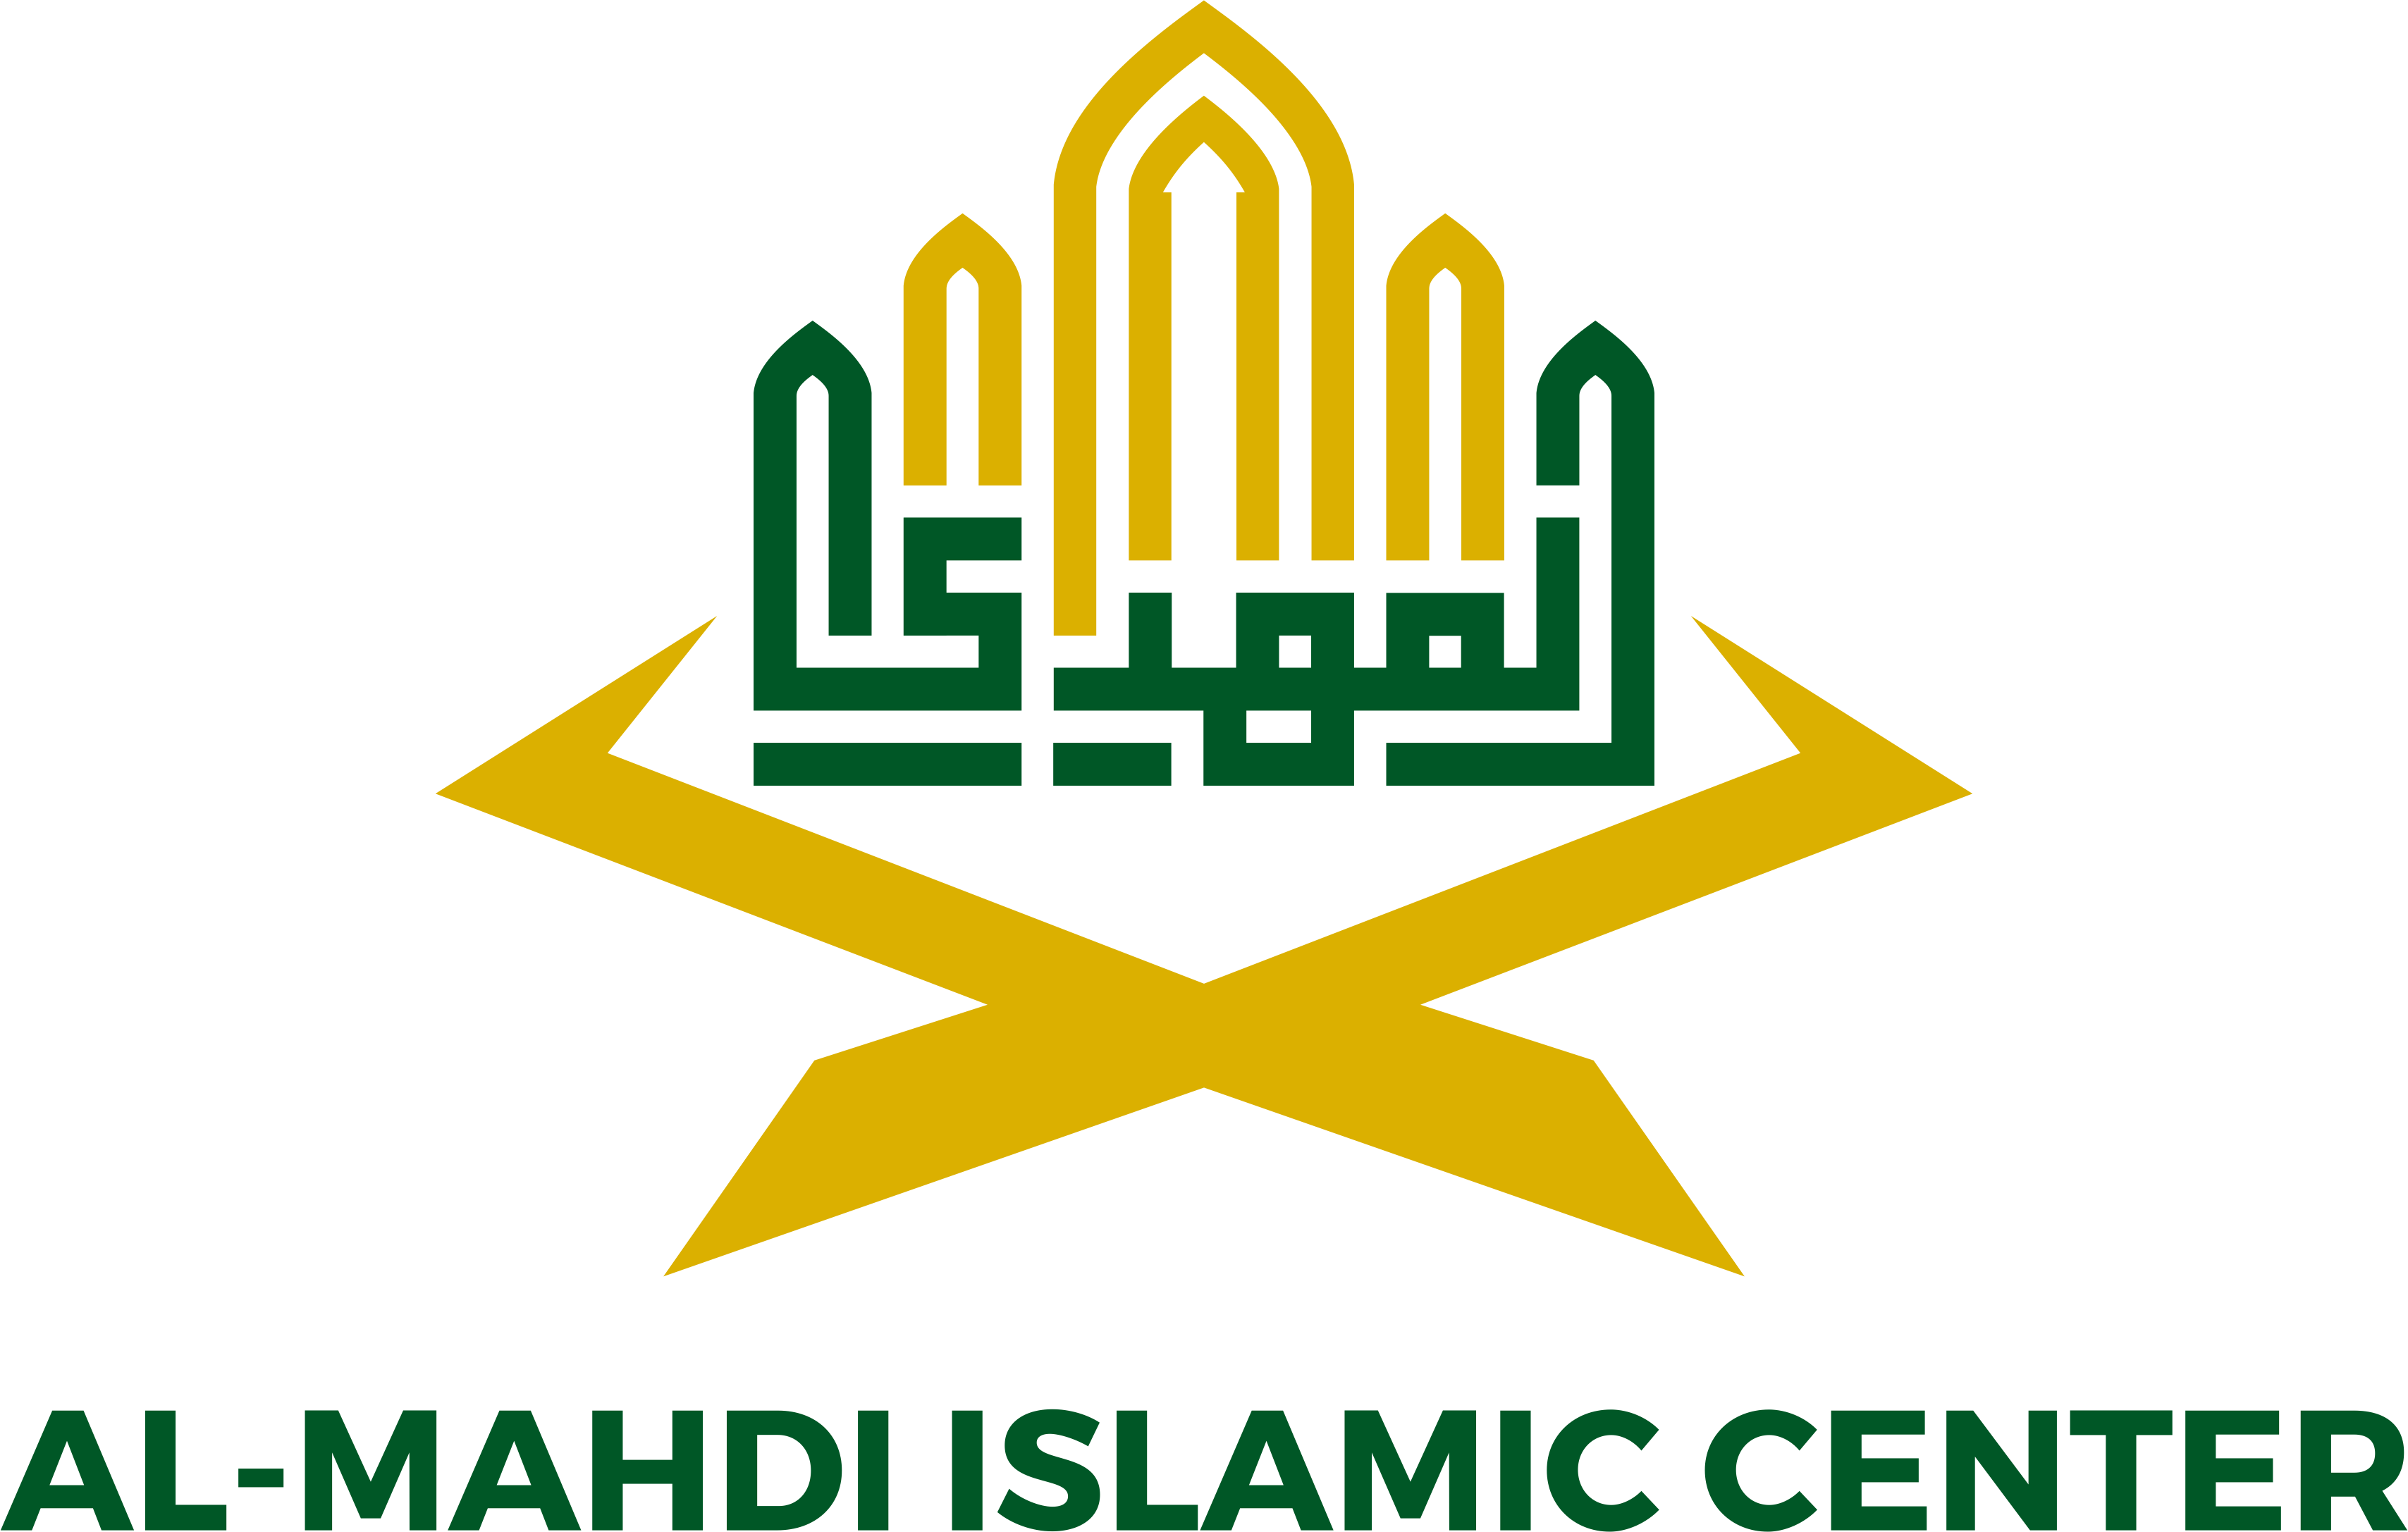 Al-Mahdi Islamic Center